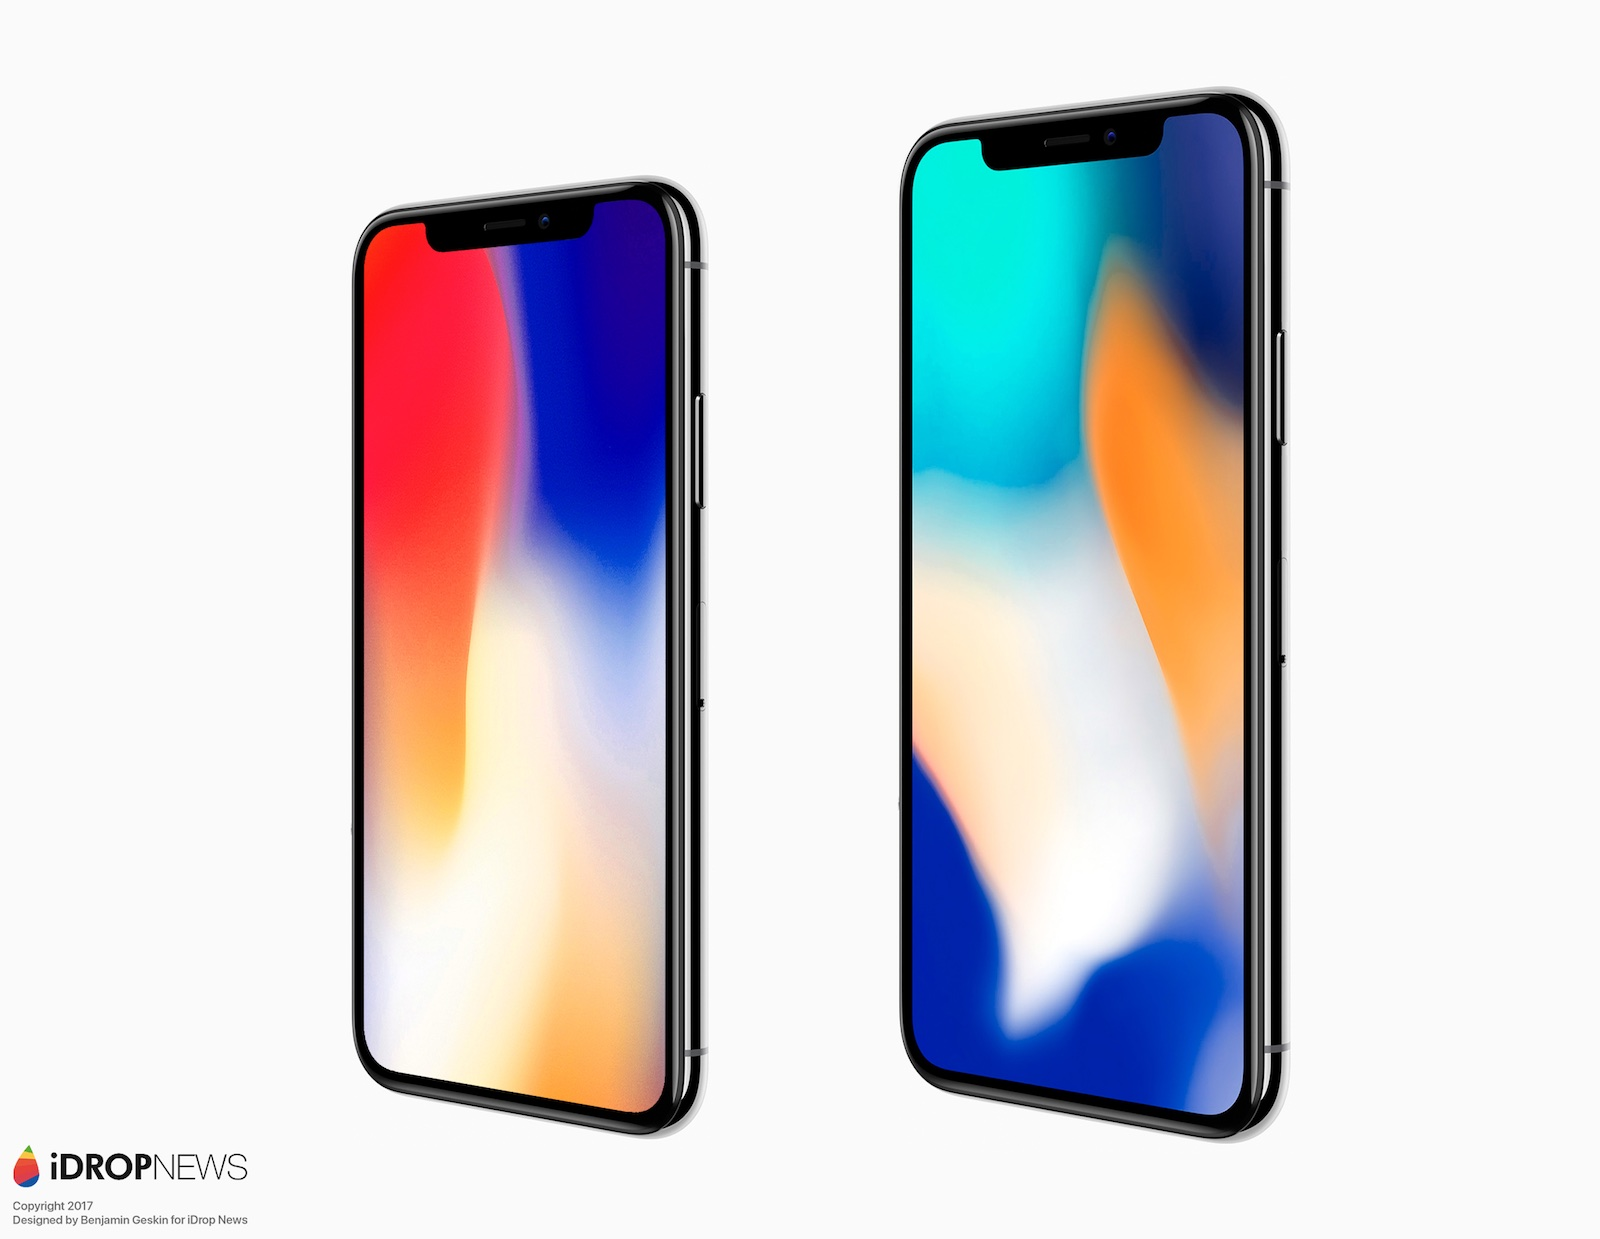 Iphone X Plus Release Date Rumors News And Images